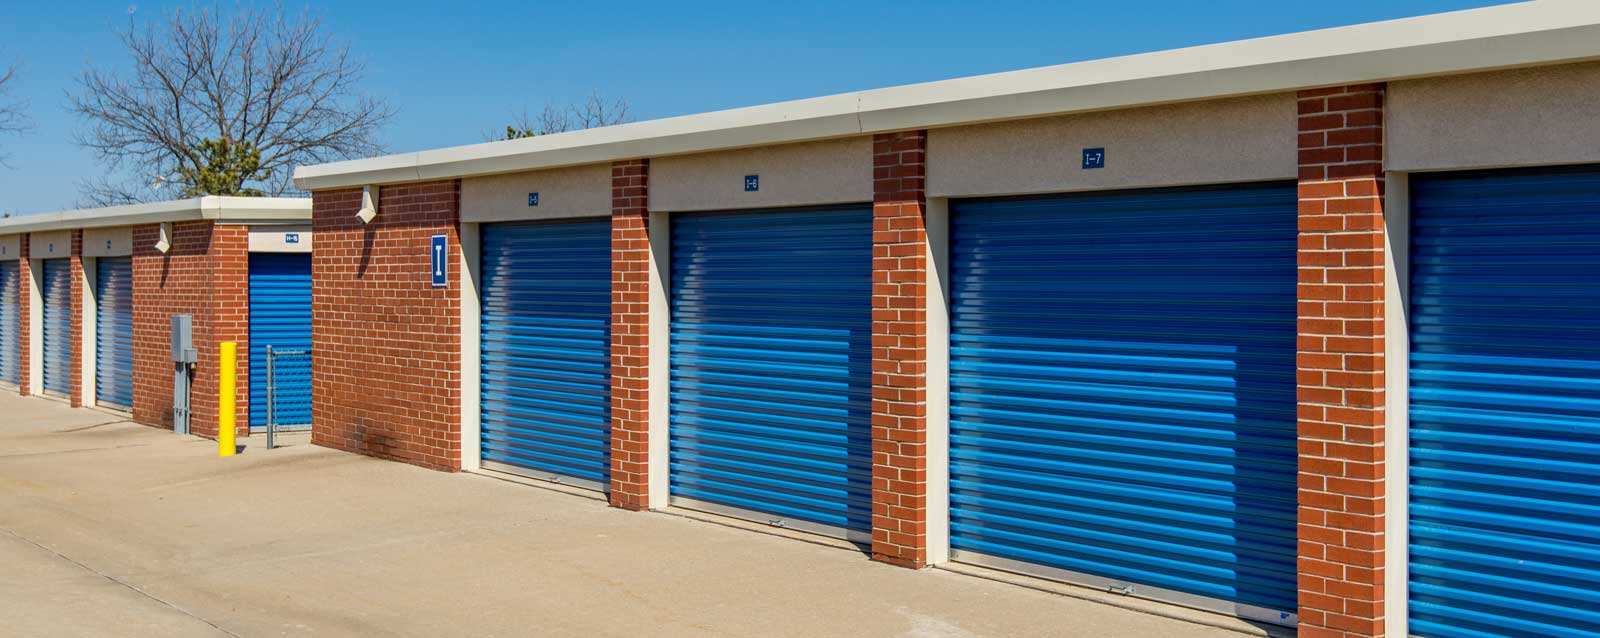 Drive up units at self storage in olathe